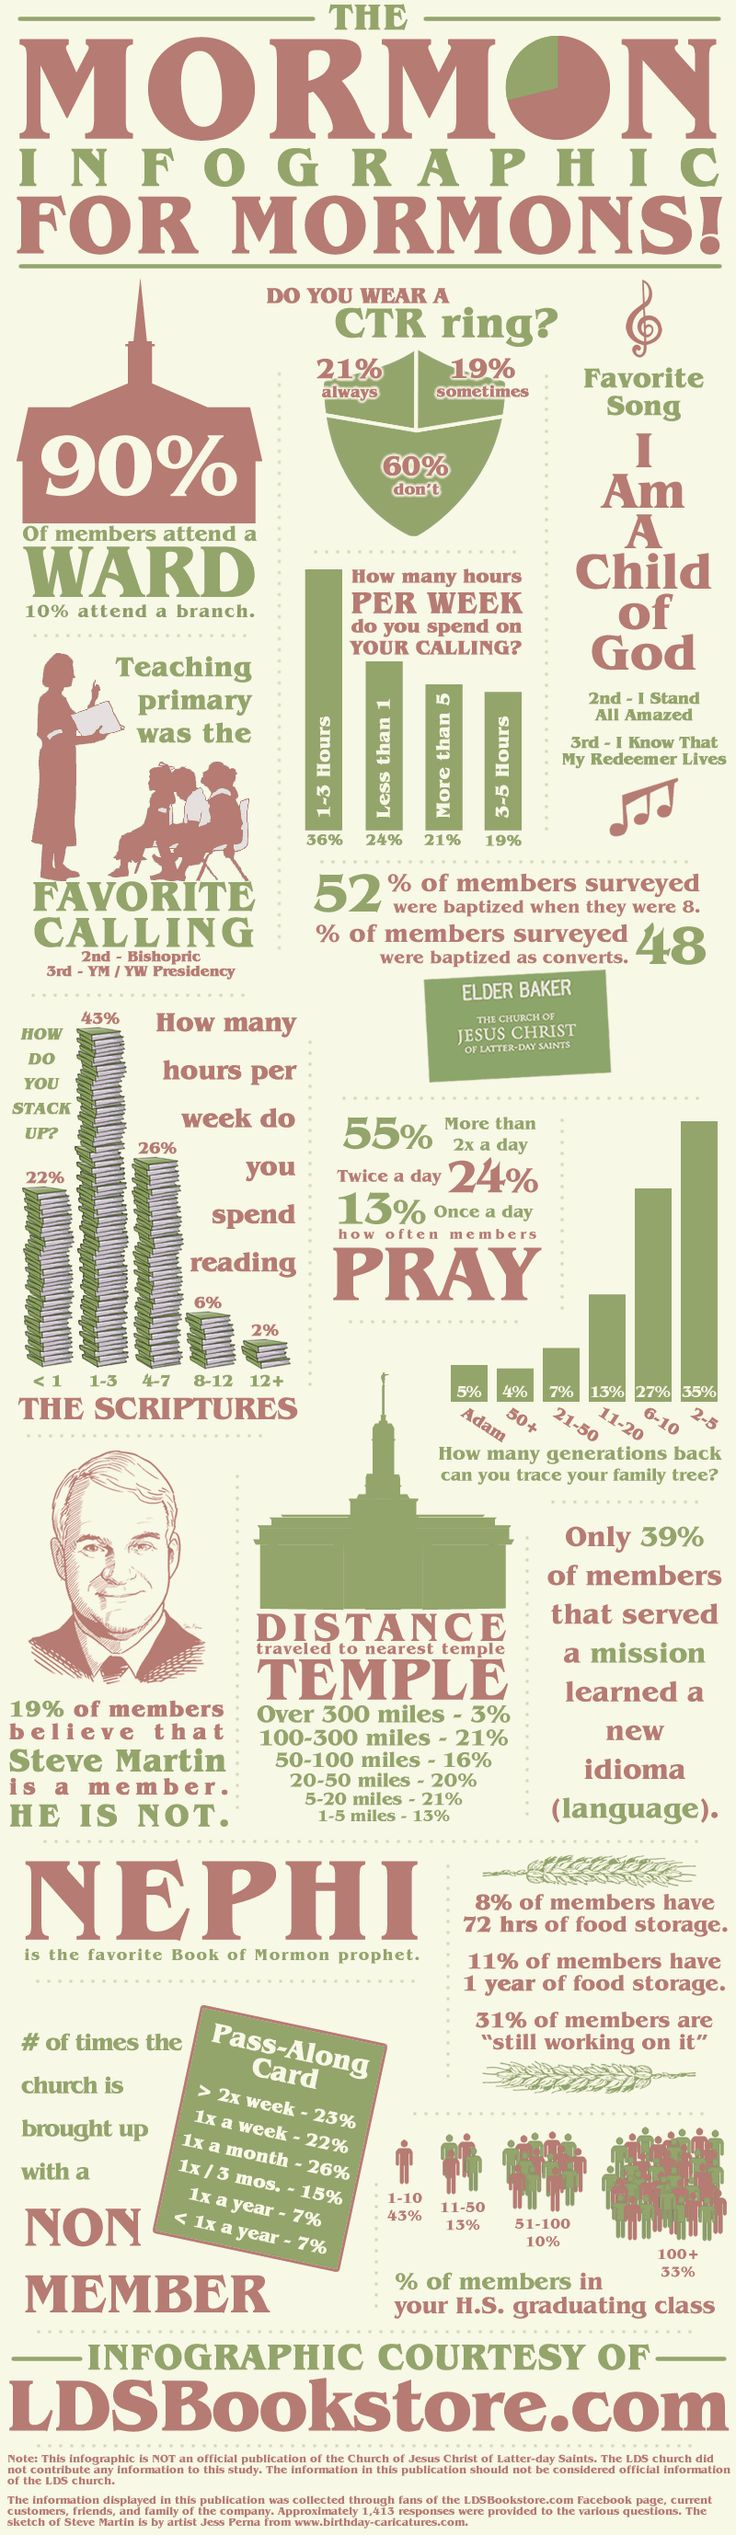 It's the Mormon Infographic for Mormons! How do you stack up? :)